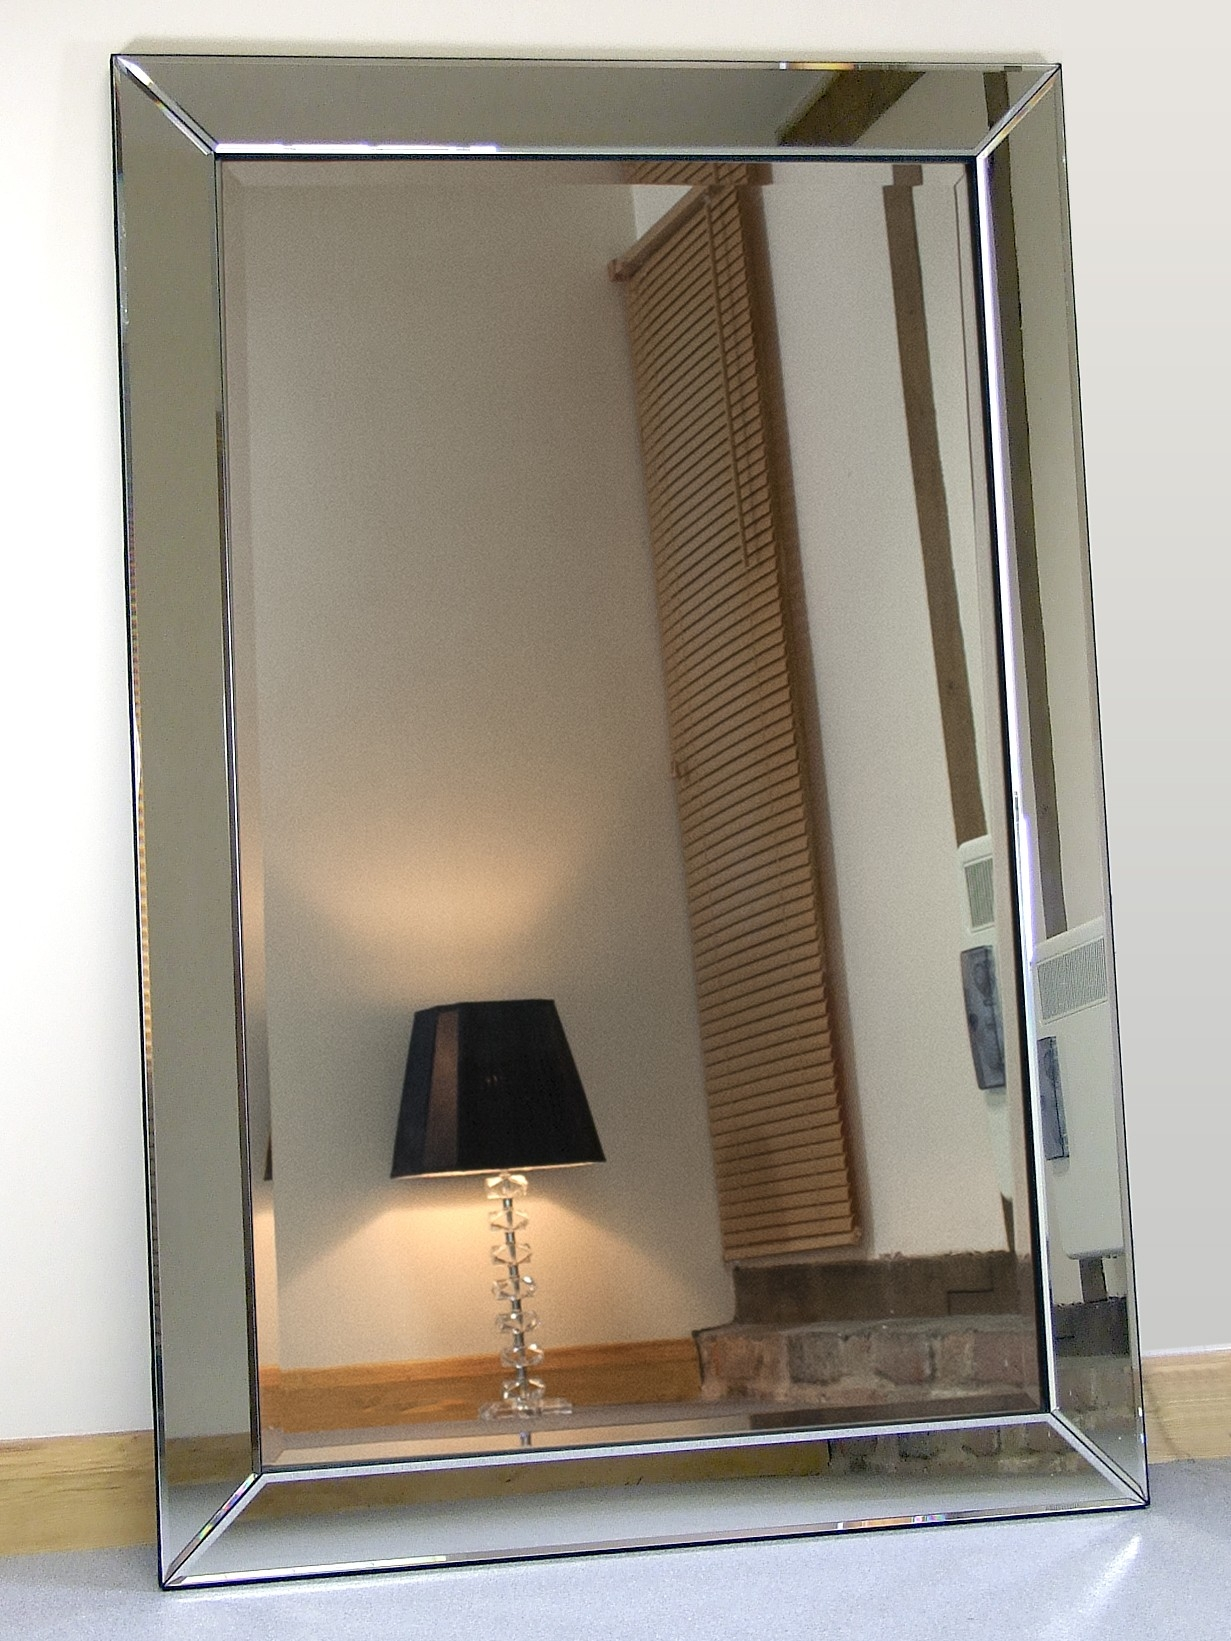 Large Glass Bevelled Wall Mirror Tonyswadenalocker Inside Large Glass Bevelled Wall Mirror (Image 9 of 15)